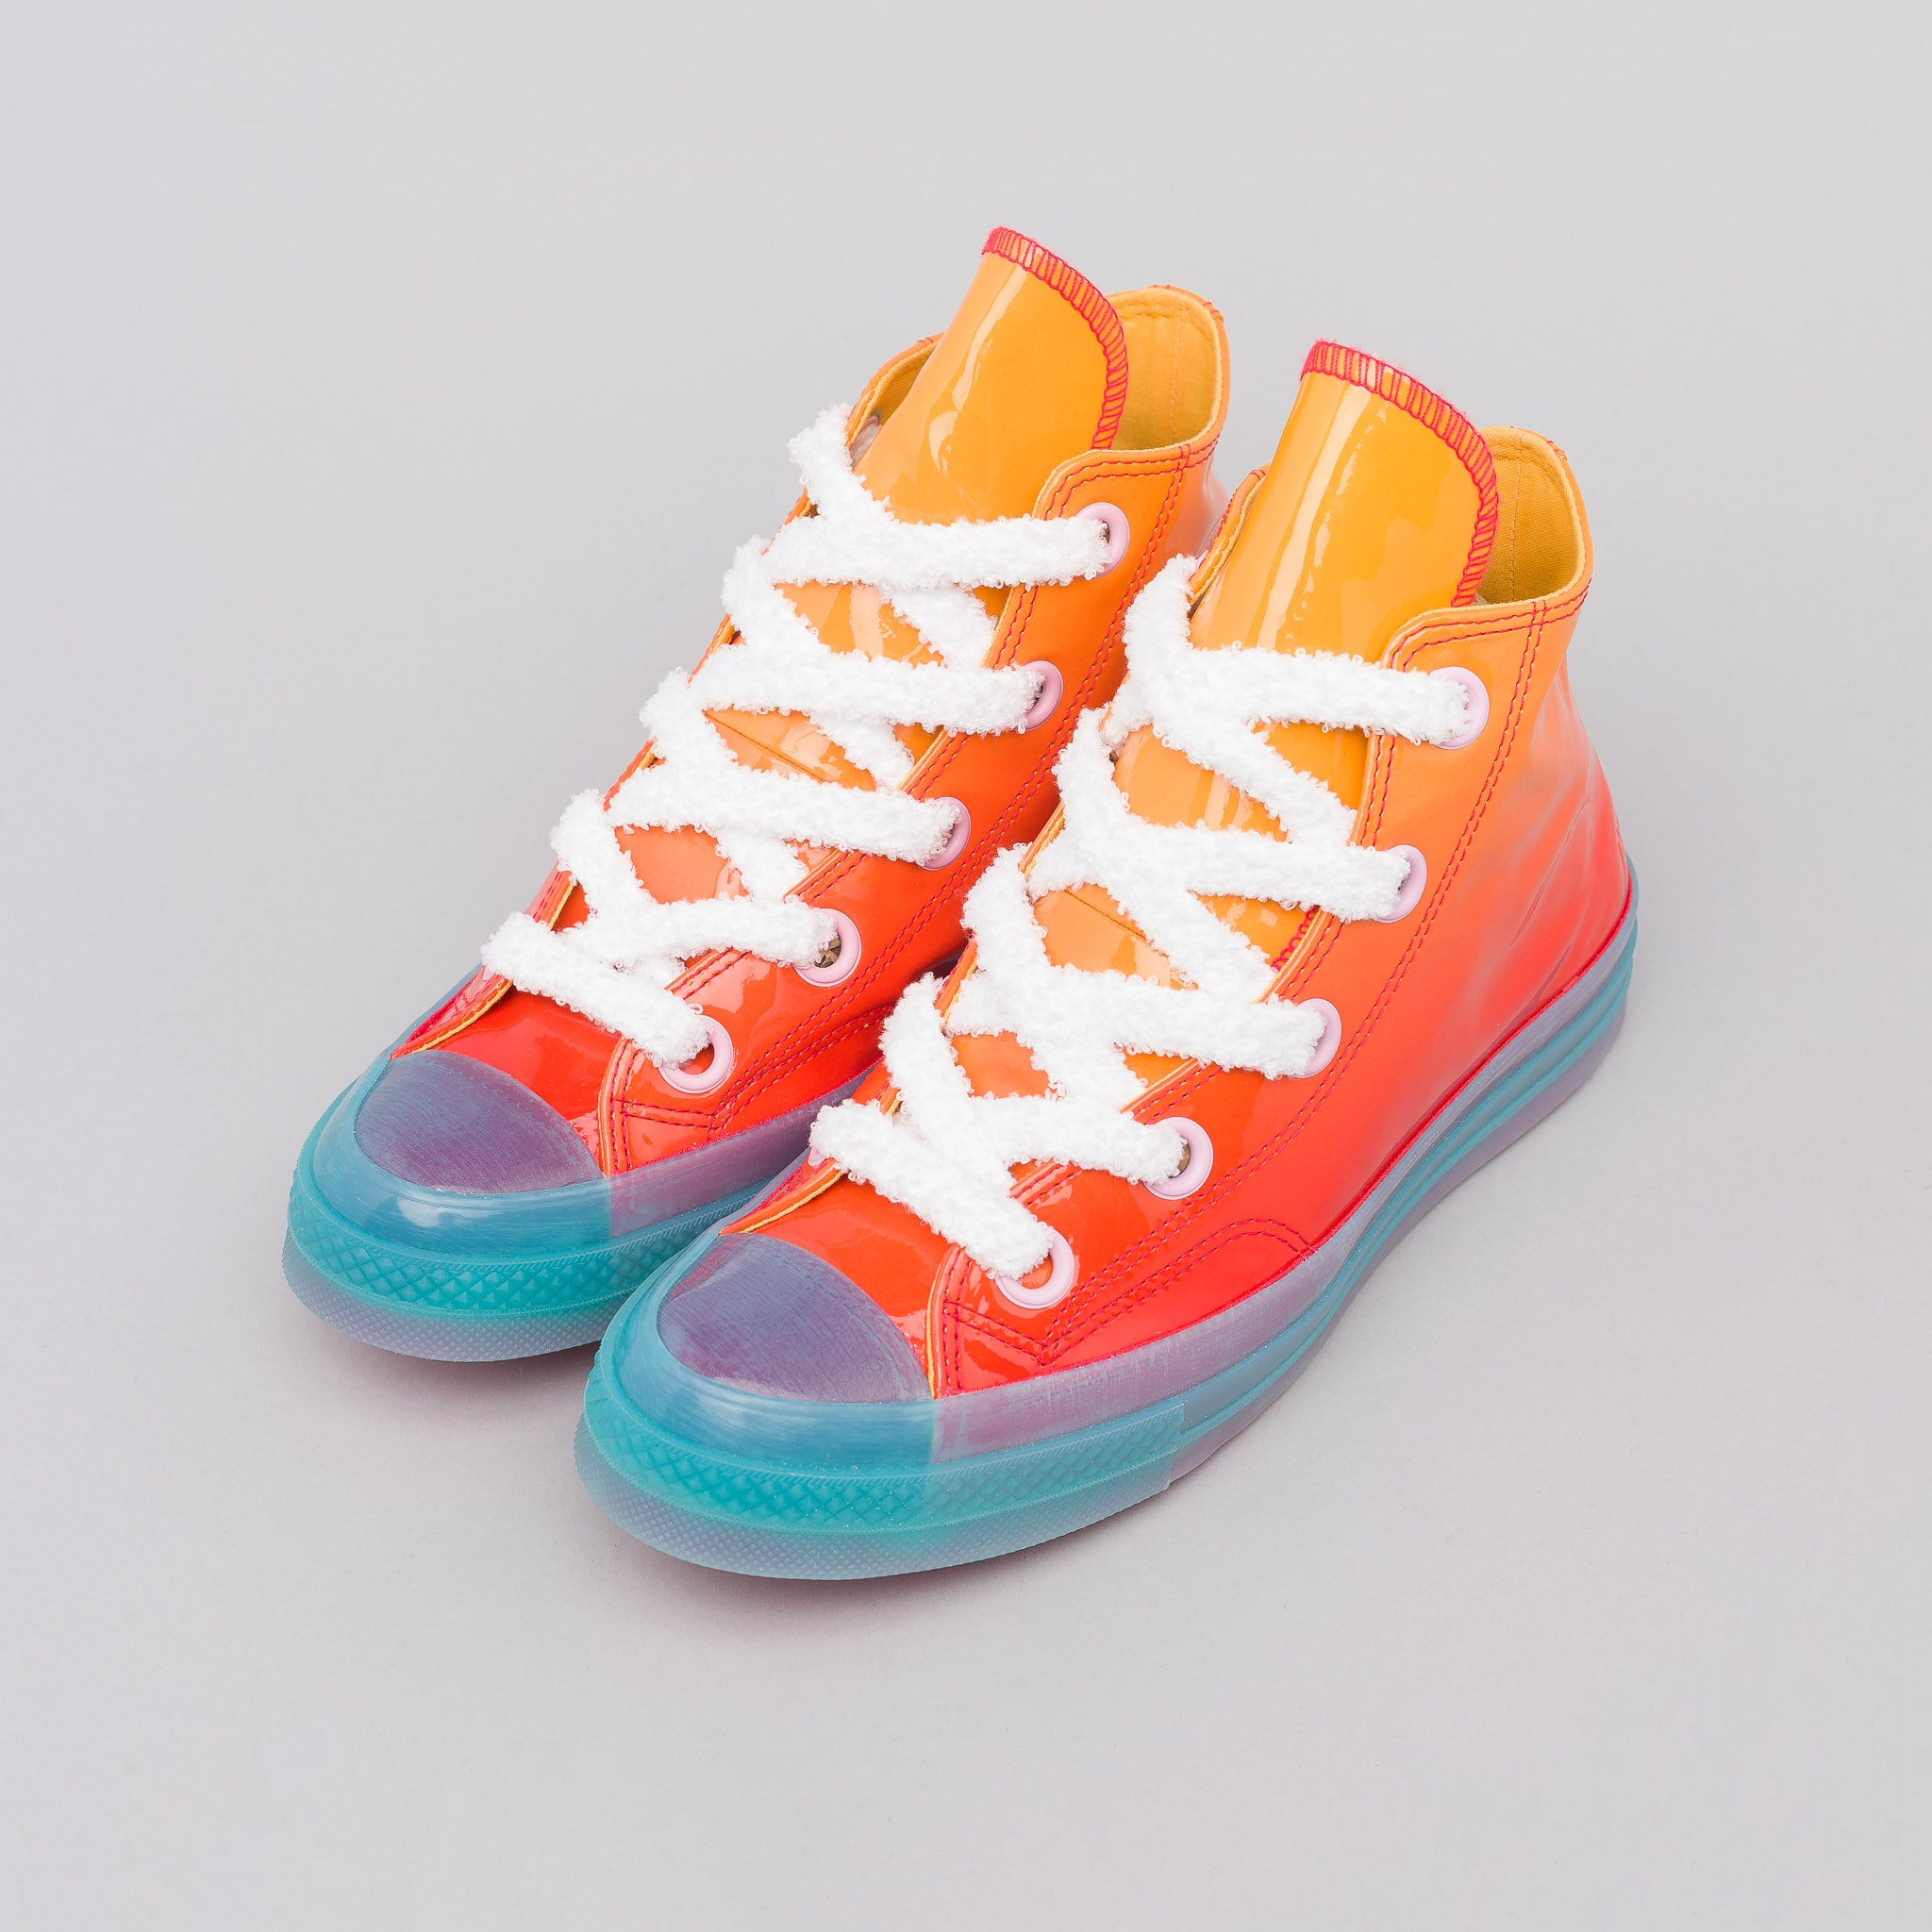 x JW Anderson Chuck 70 Big Eyelets Hi in Kumquat